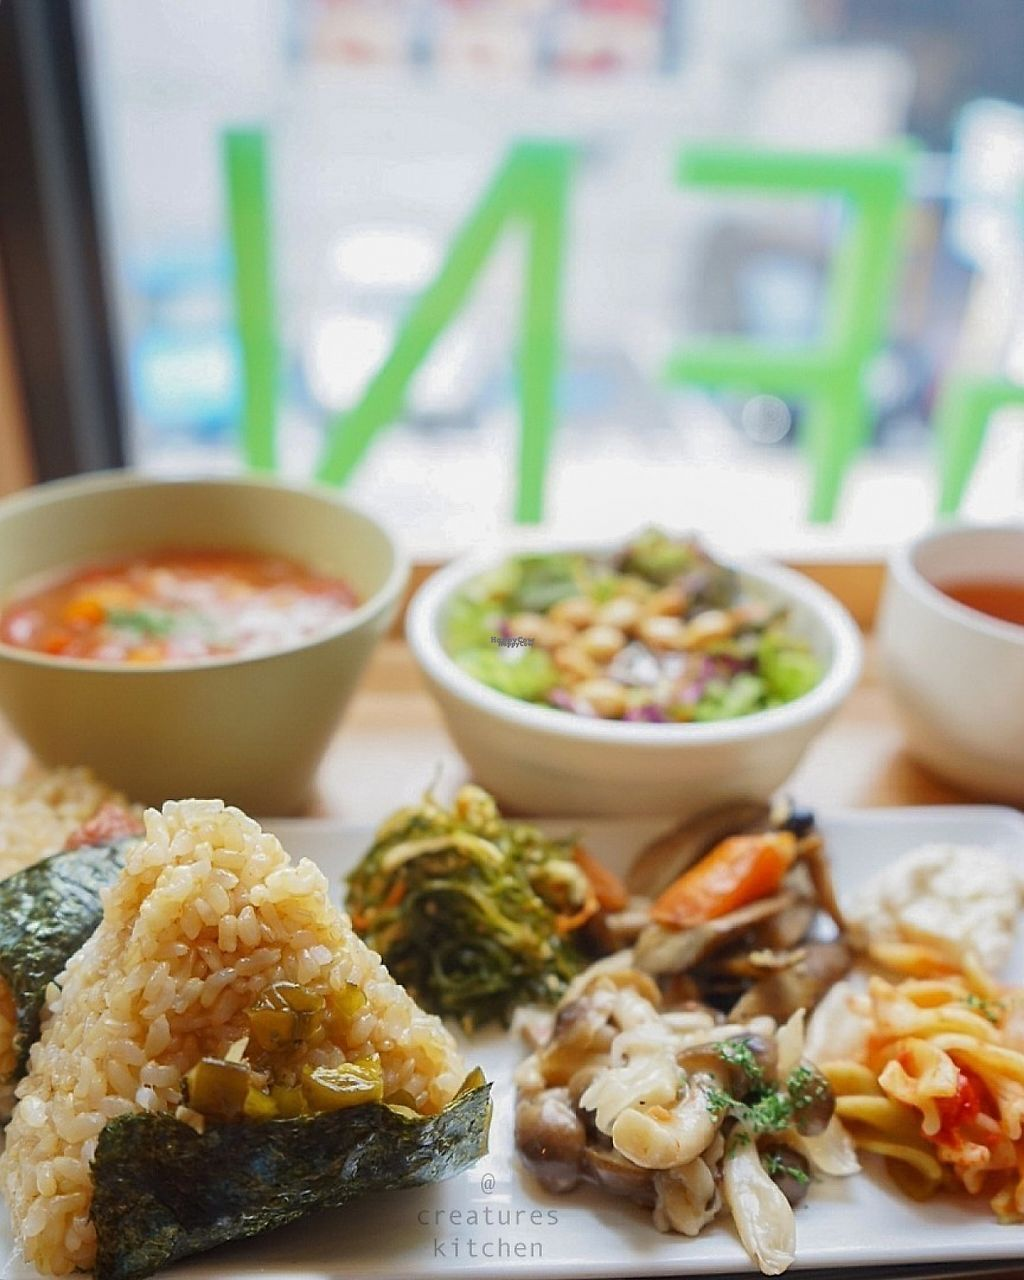 """Photo of Genmai Cafe  by <a href=""""/members/profile/EmmaCebuliak"""">EmmaCebuliak</a> <br/>Shokujidouzen lunch set with brown rice onigiri, minestrone soup, salad, brown rice tea, and deli items.  <br/> February 7, 2017  - <a href='/contact/abuse/image/34757/223960'>Report</a>"""